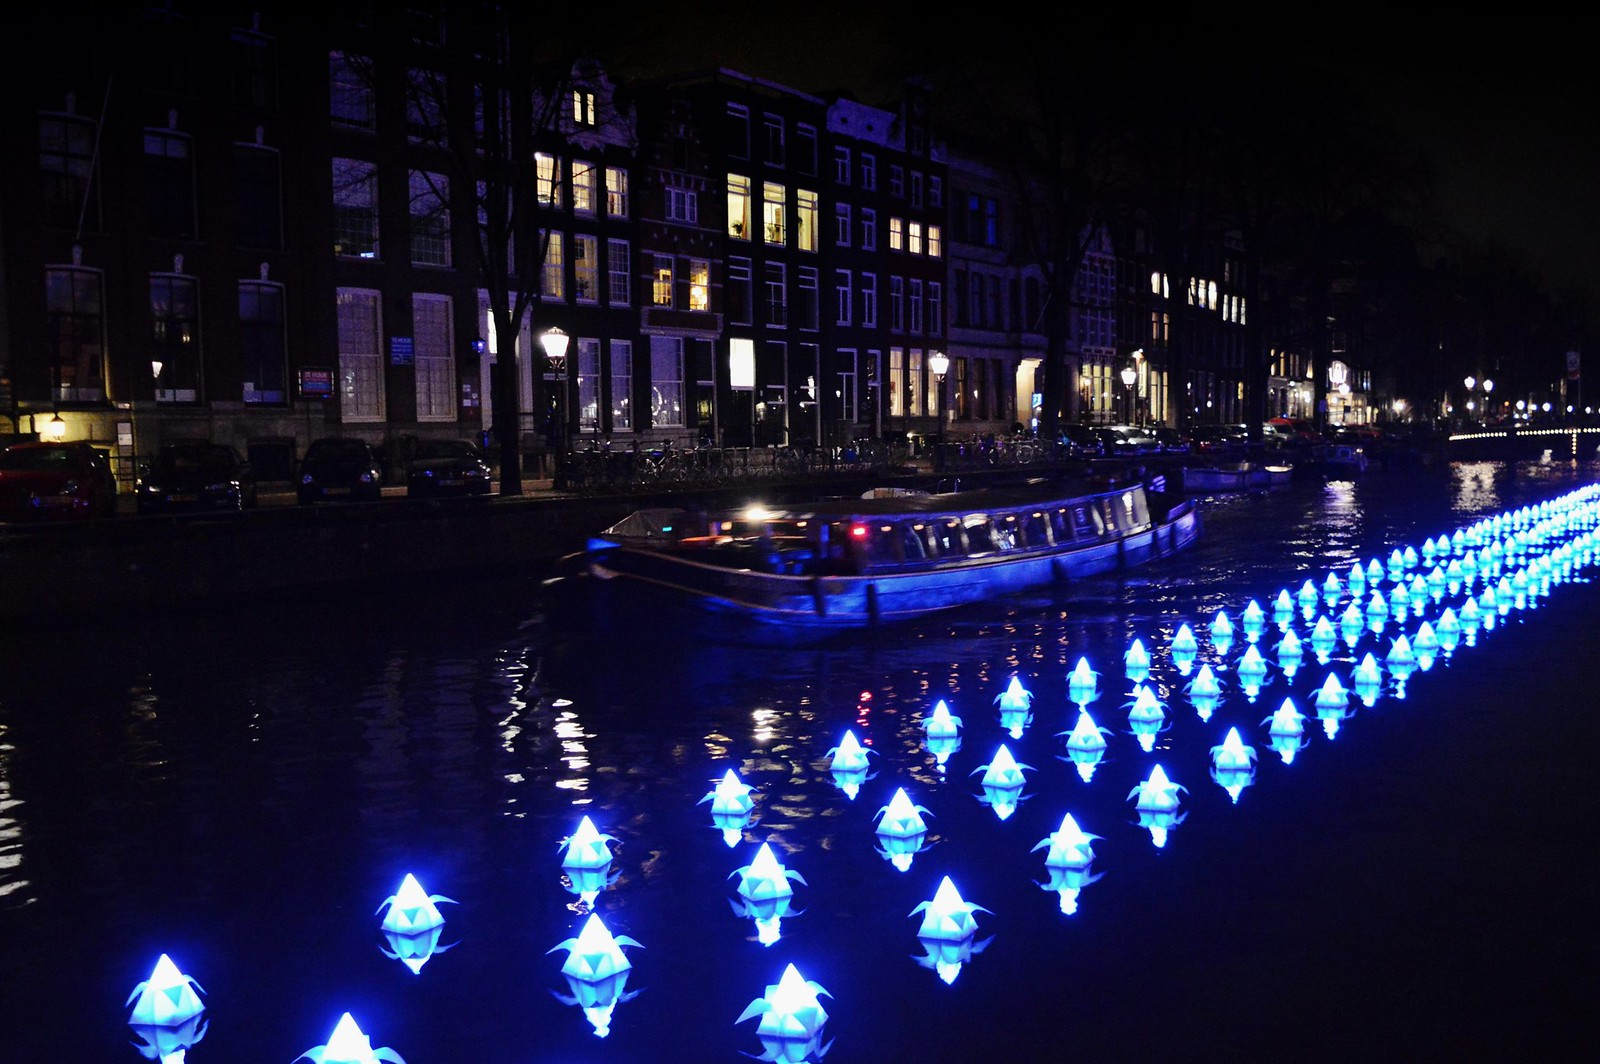 Amsterdam Light Festival Boat Tour